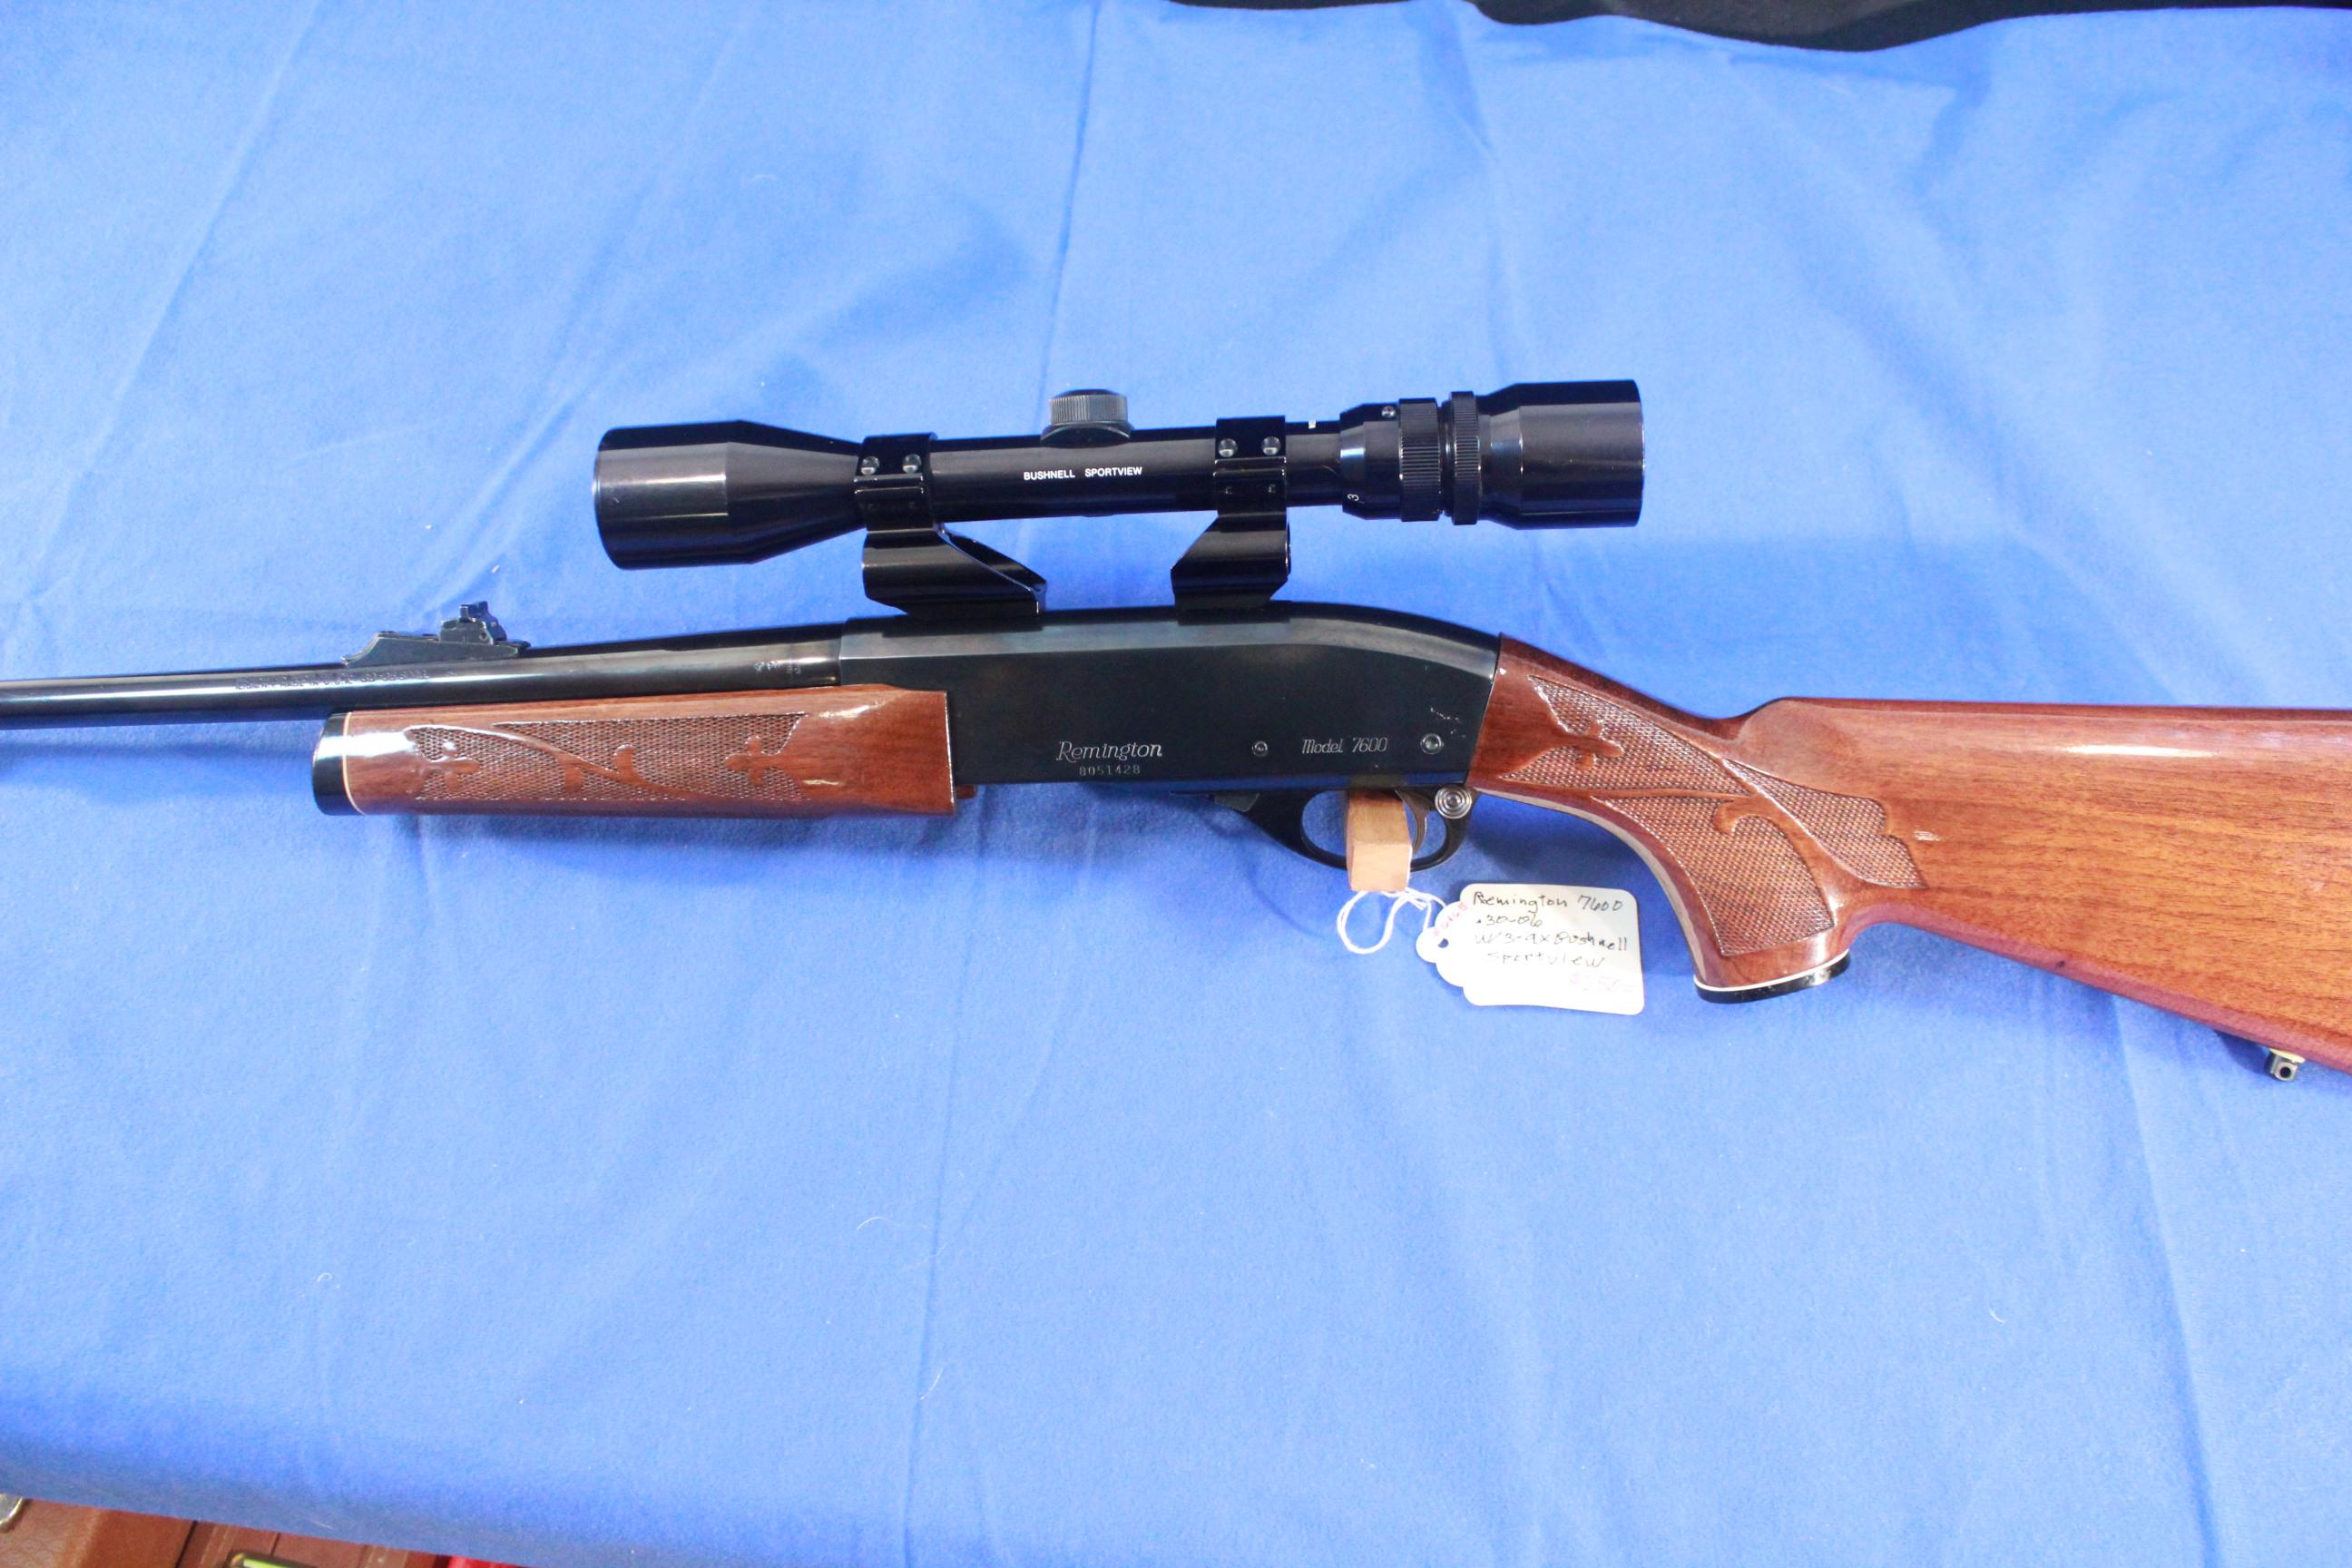 Remington Model 760 with 3-9x Bushnell Scopechief  Guns > Rifles > Remington Rifles - Modern > Other